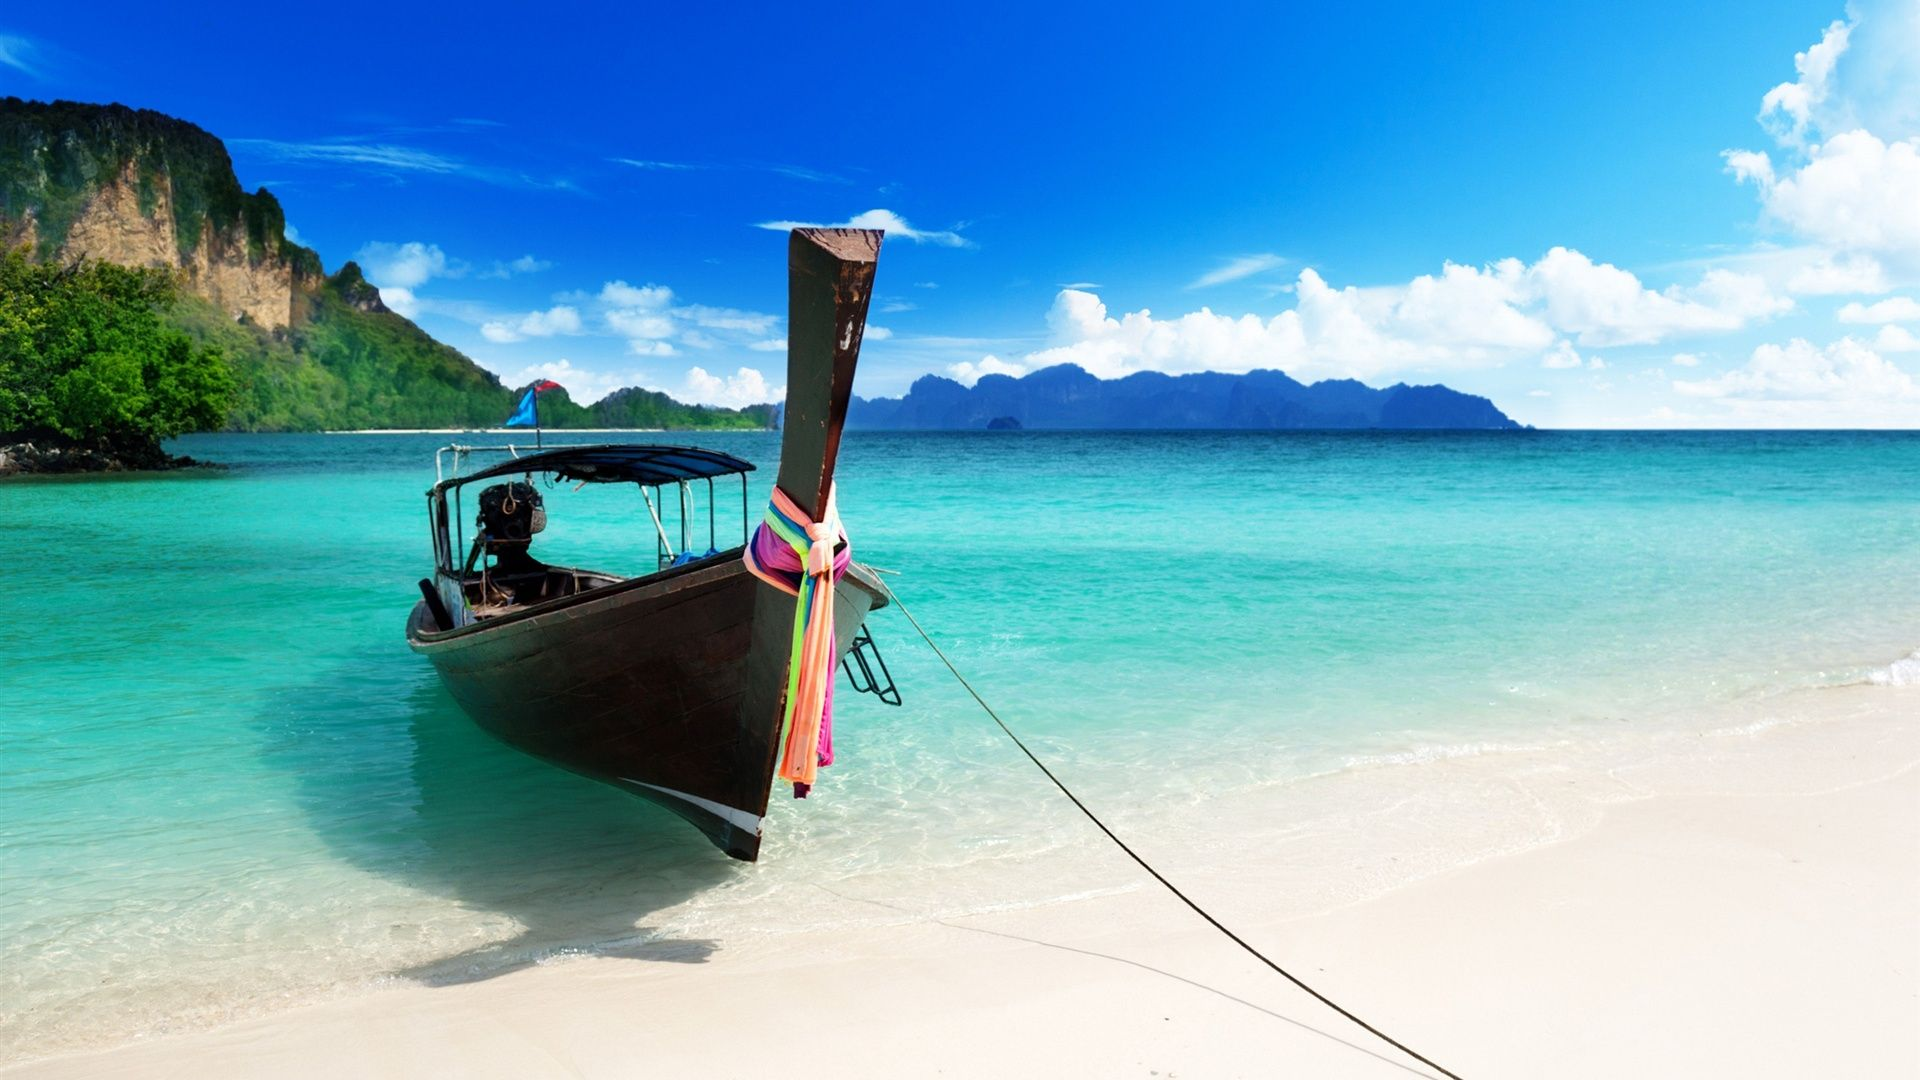 Thailand Wallpapers For Your Desktop Boats